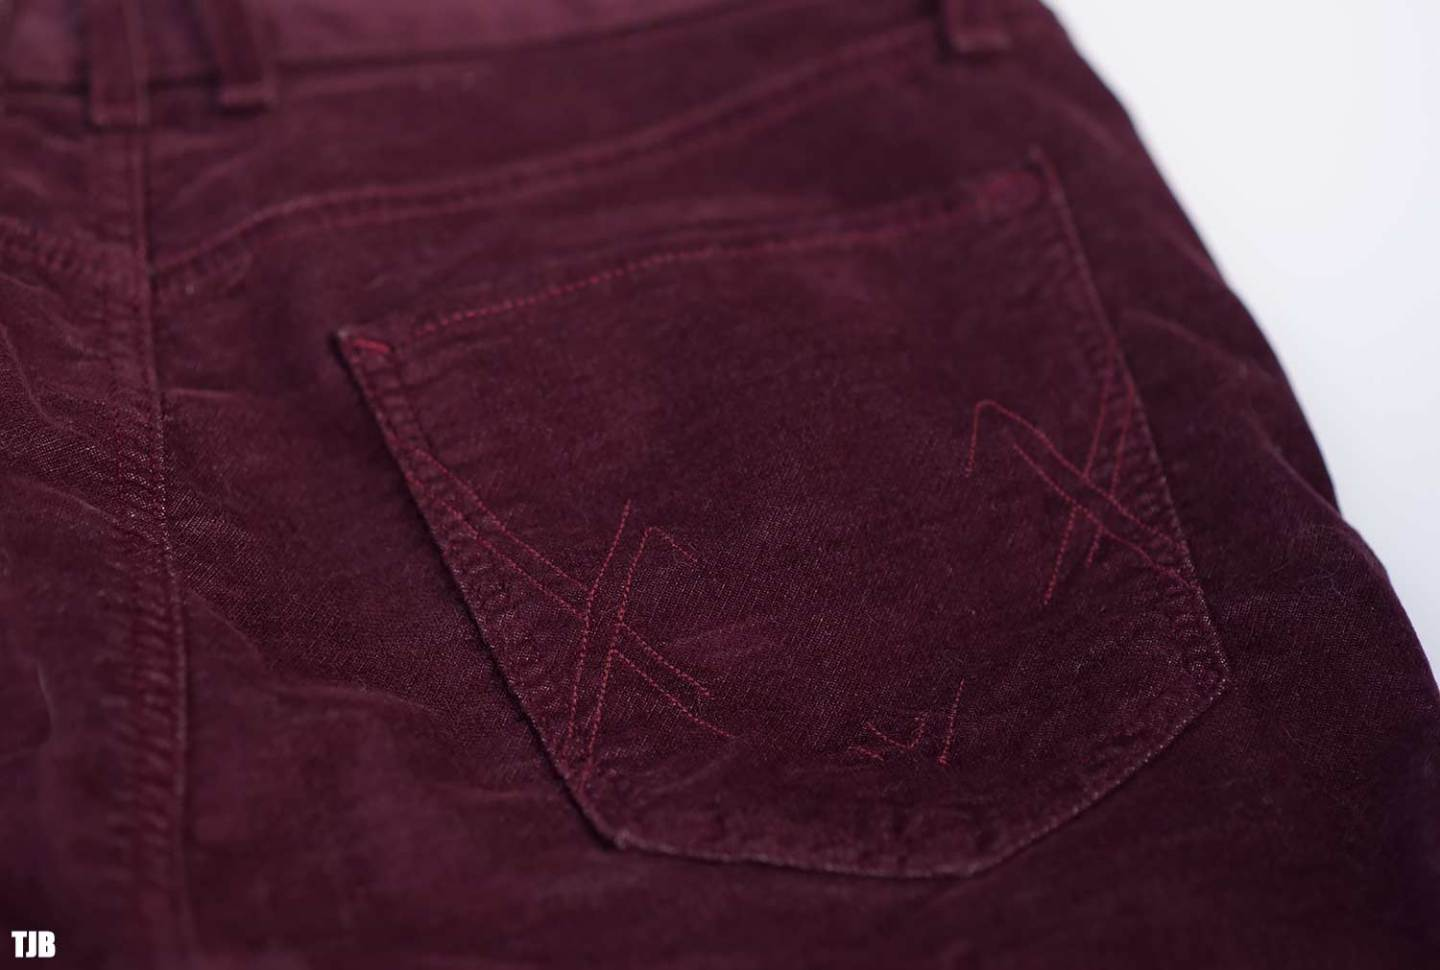 mcguire-denim-newton-exposed-button-skinny-pants-in-pinot-review-4